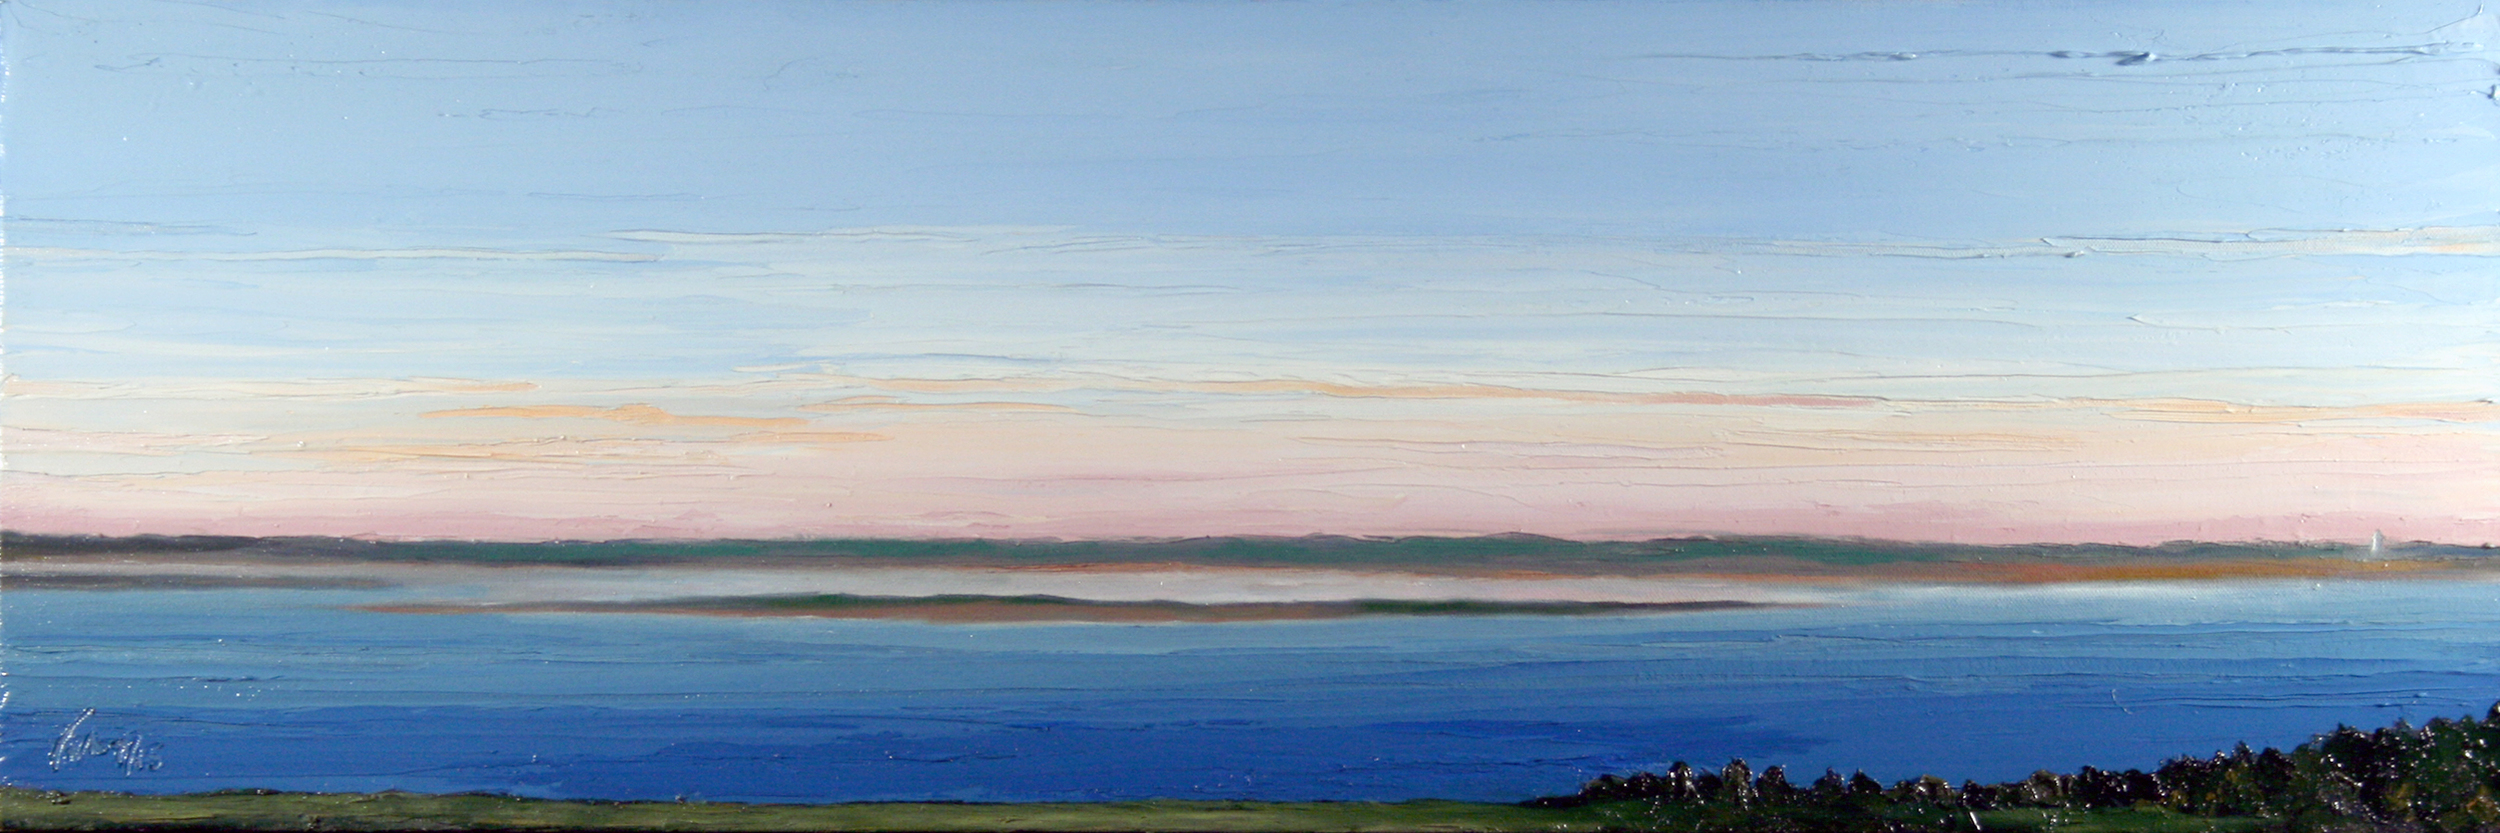 Torney - Donahue View, Barnstable MA to Chatham Light - oil on canvas, 12 by 36 inches, 2015.jpg